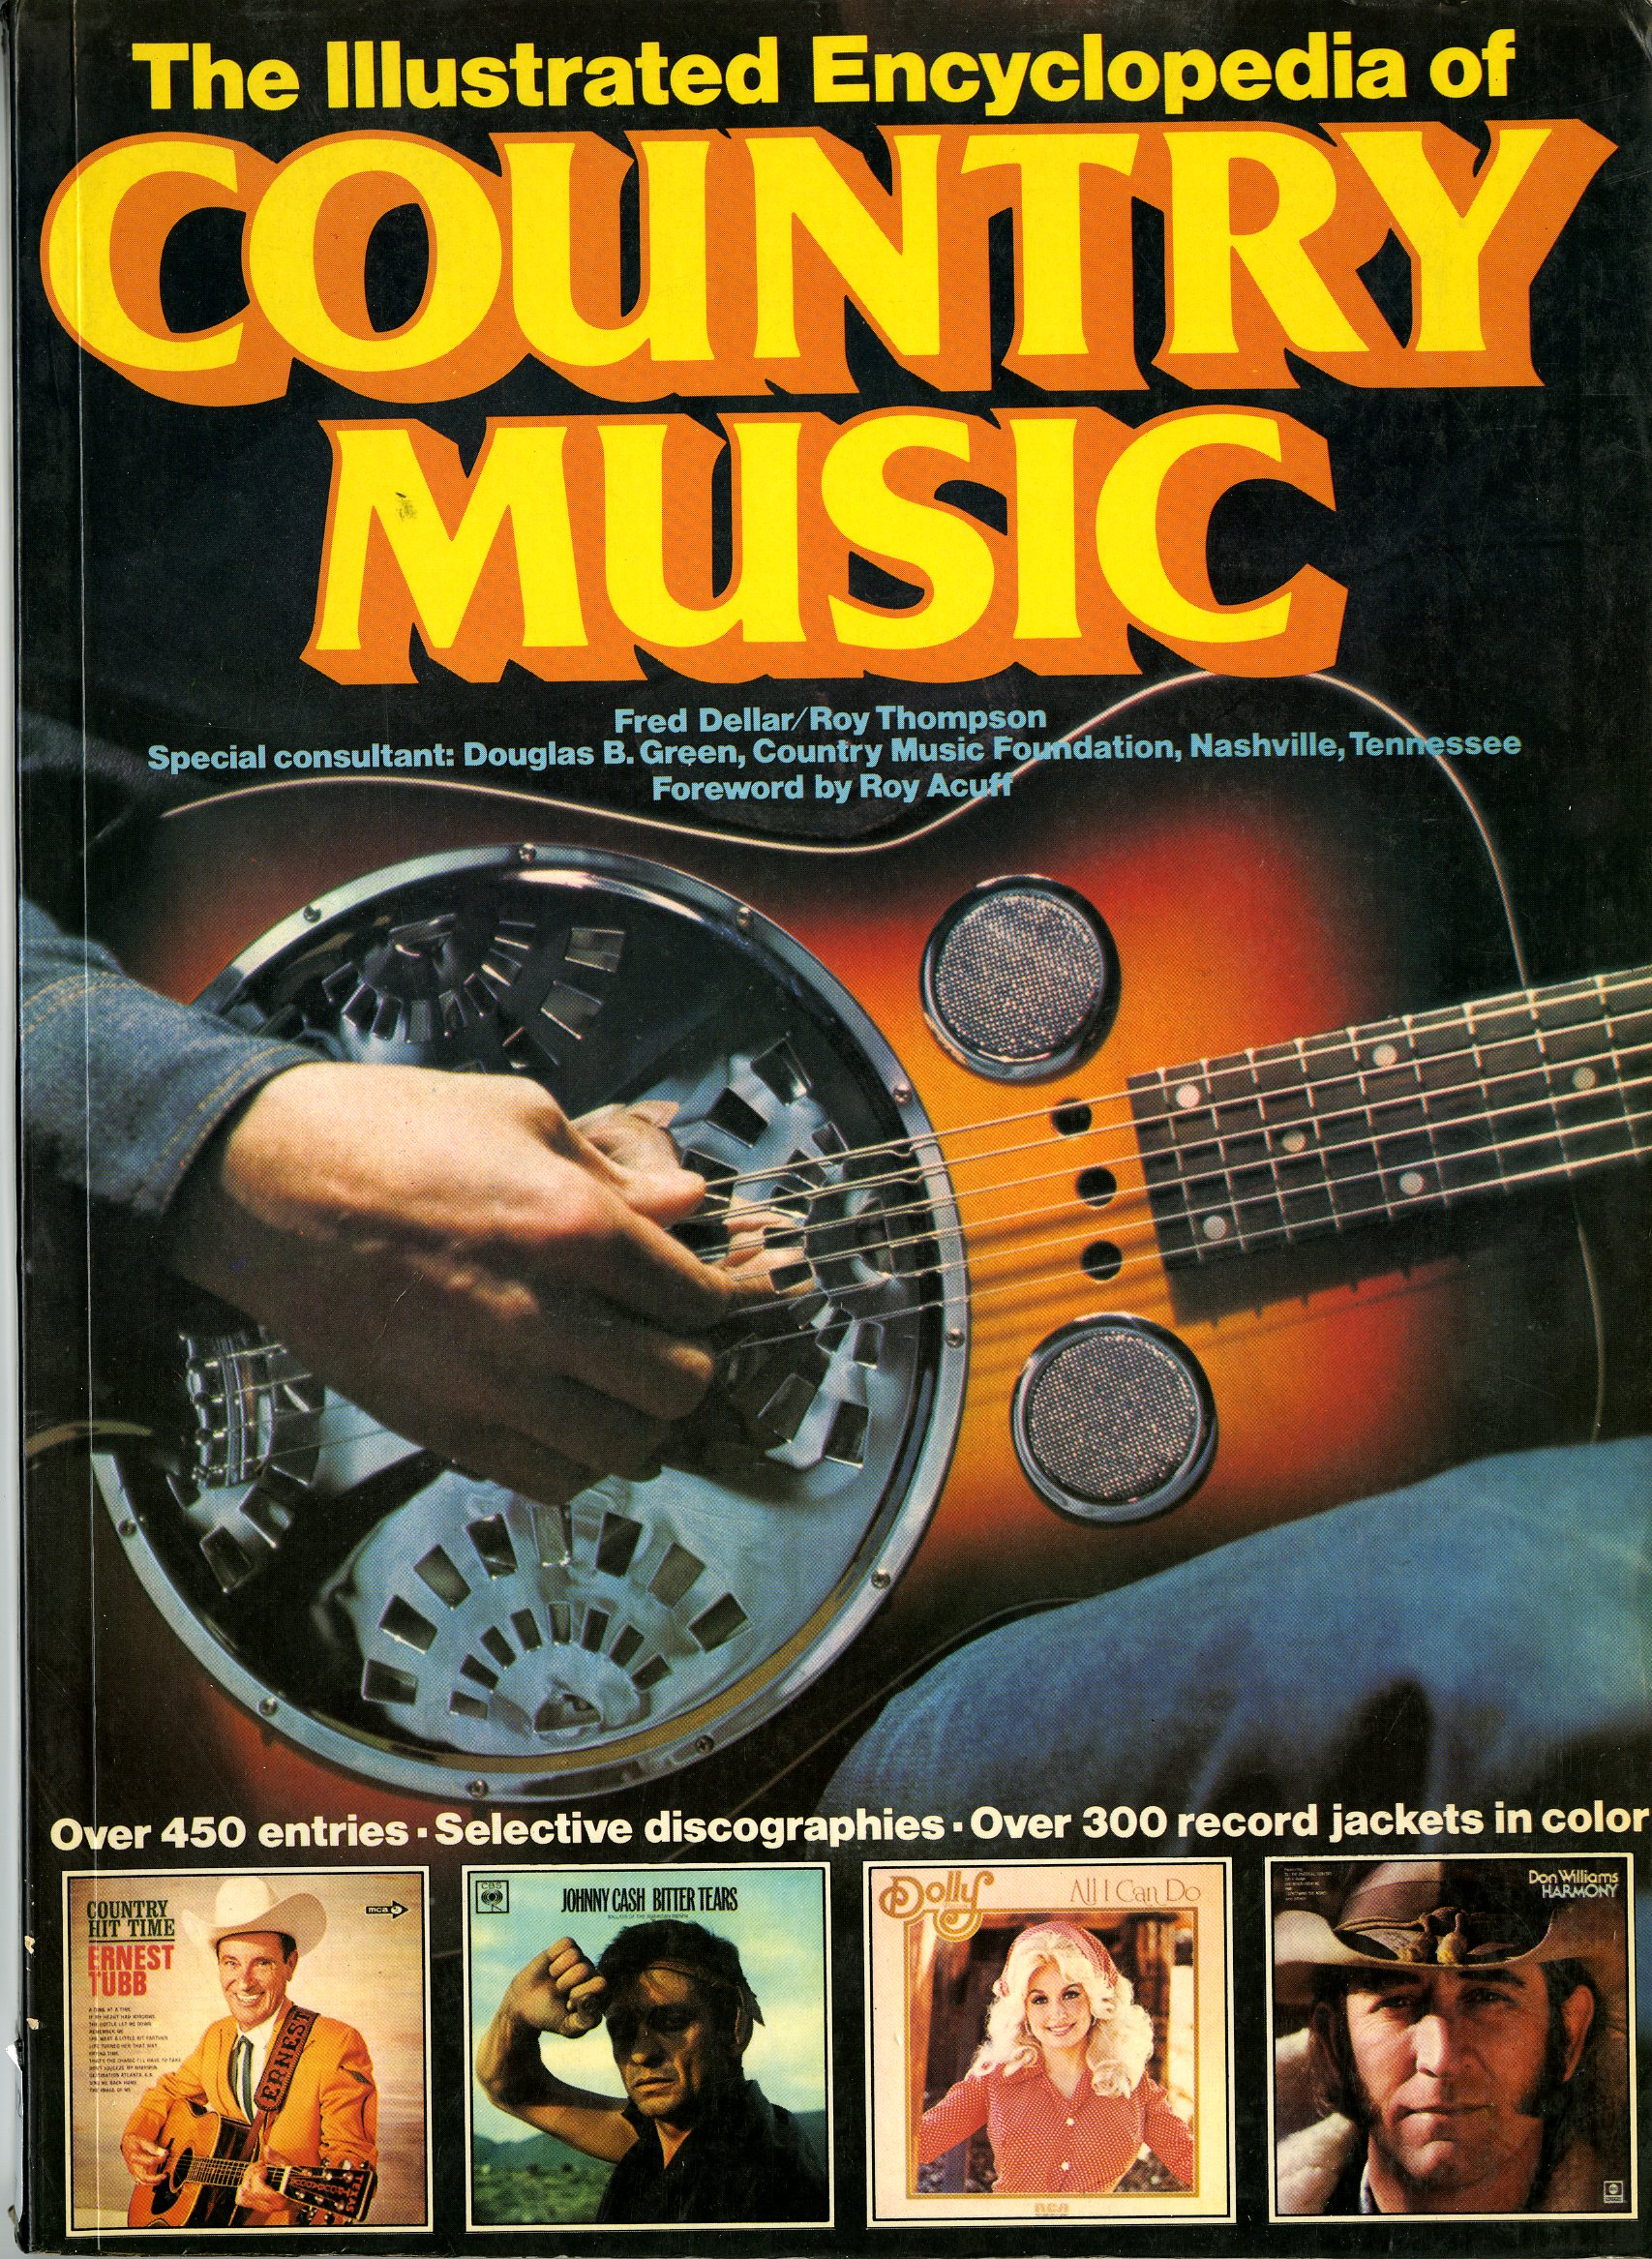 The Illustrated Encyclopedia of Country Music 007